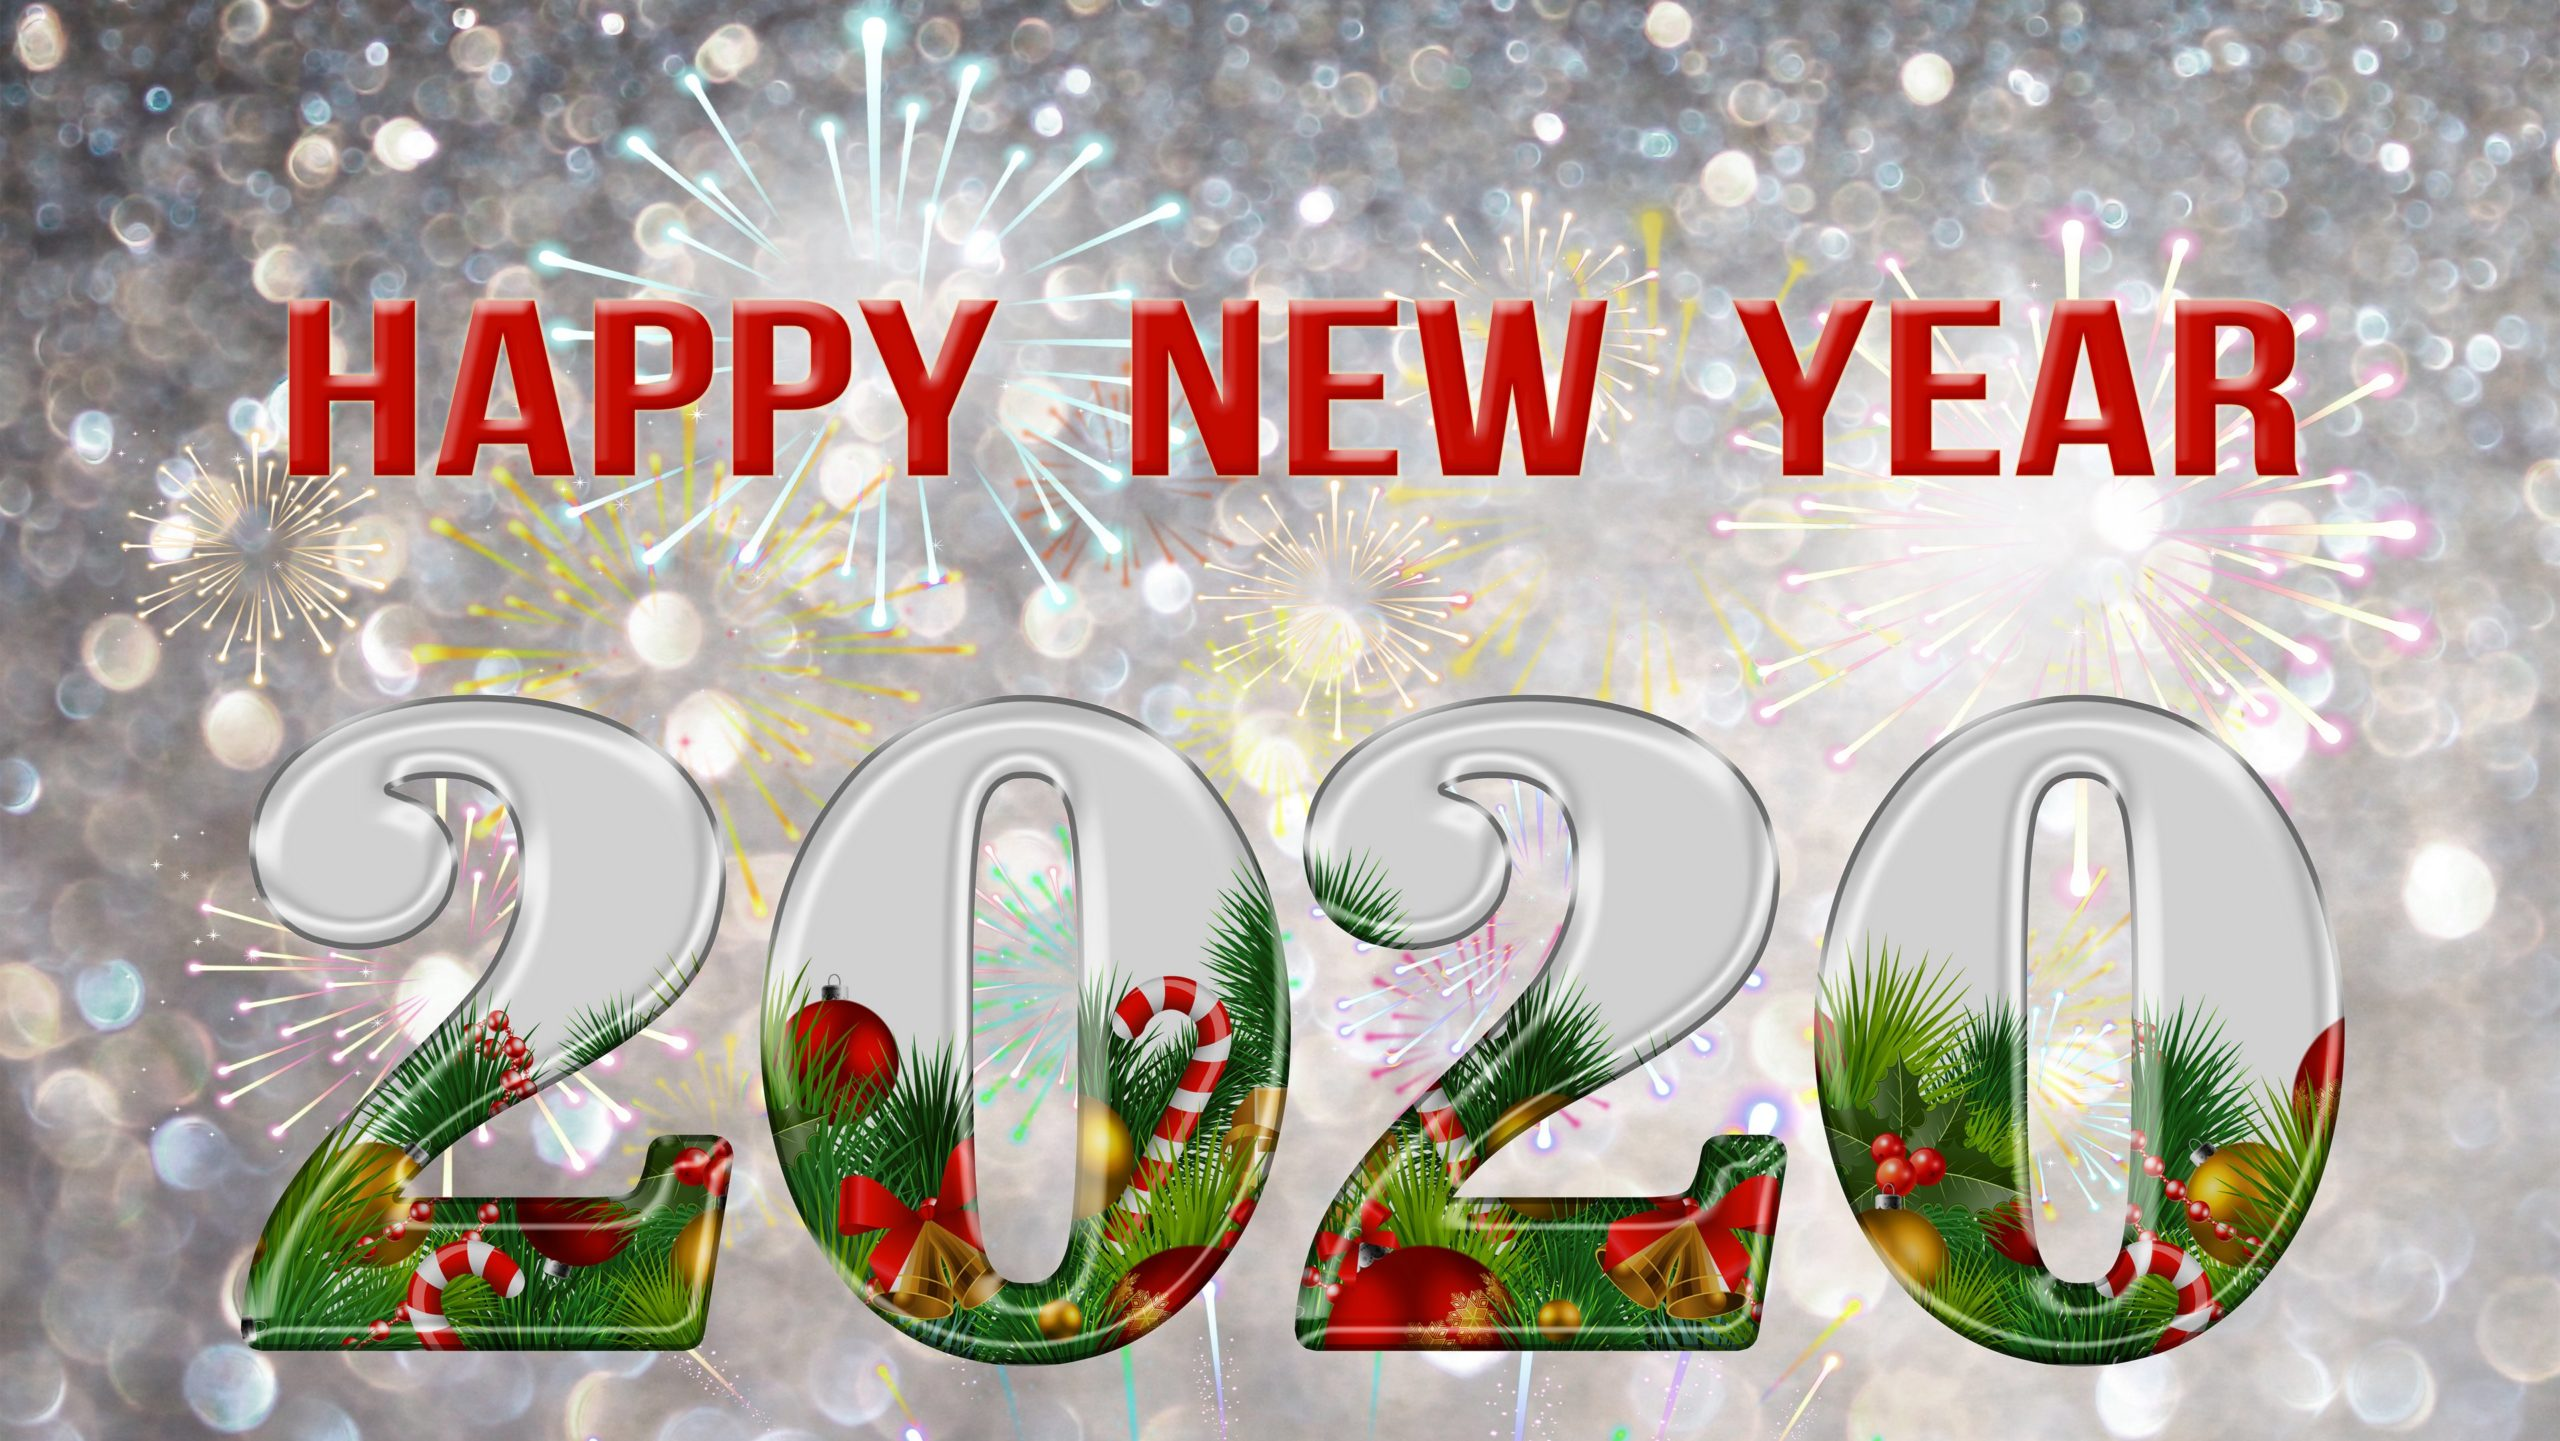 download 14 Fireworks Happy New Year 2020 Wallpapers High 2560x1441